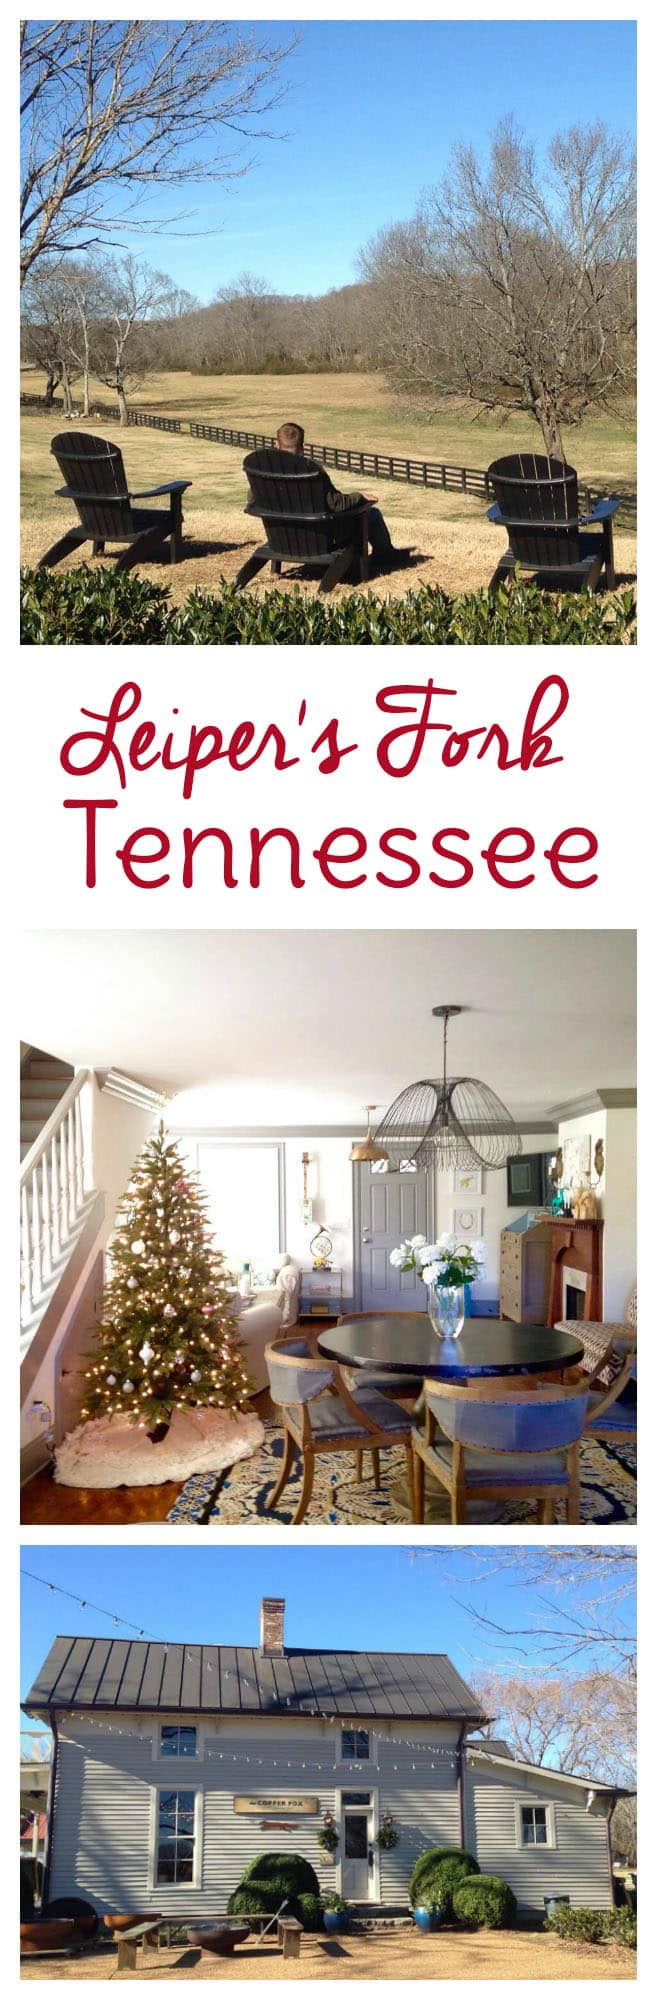 Things to do in Leiper's Fork Tennessee (besides hope for a Justin Timberlake sighting)